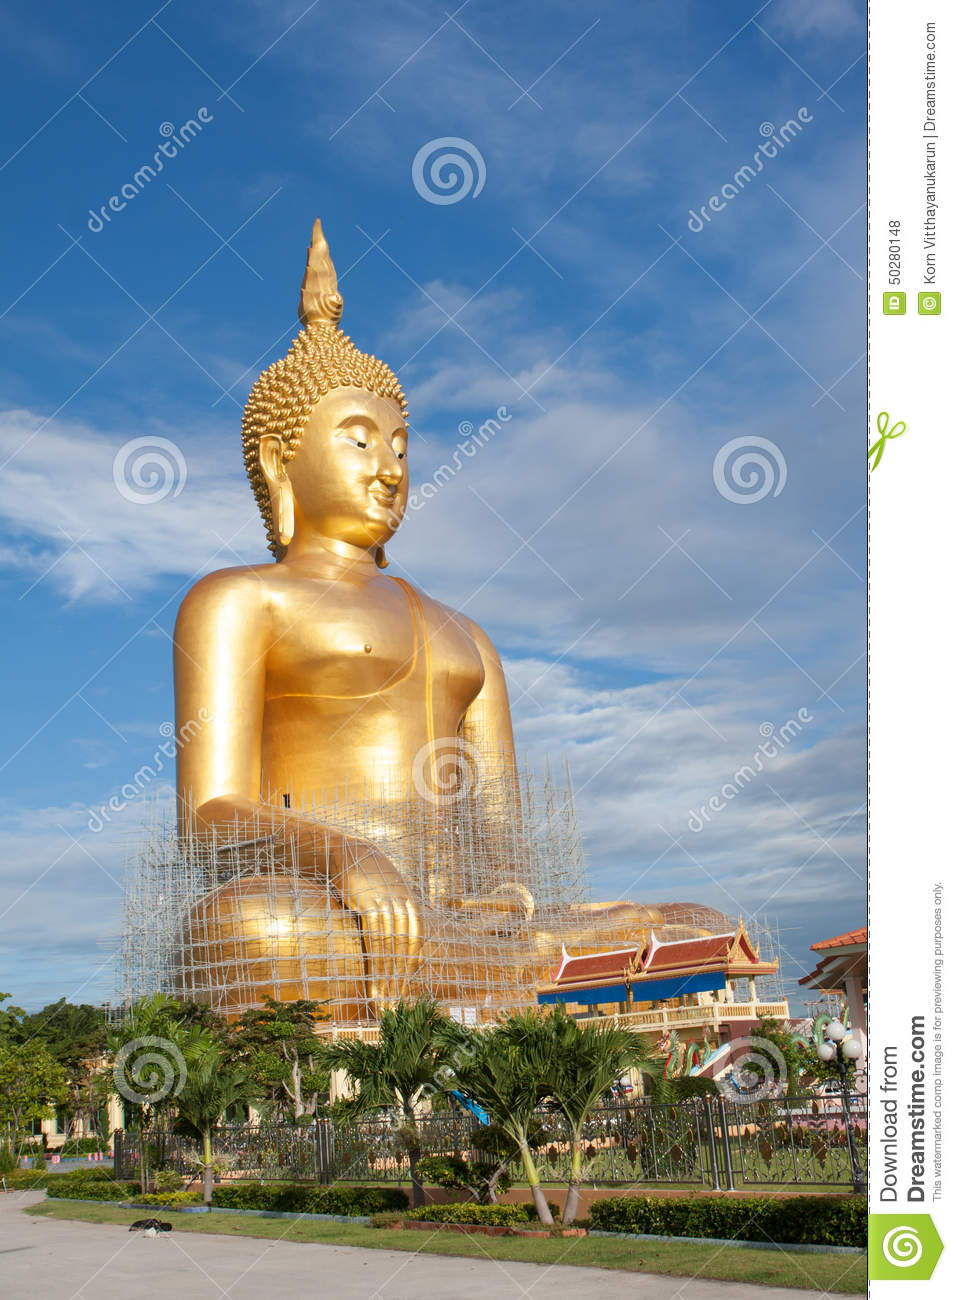 Gold buddha statue under construction in Thai temple with clear sky.WAT MUANG, Ang Thong, THAILAND.